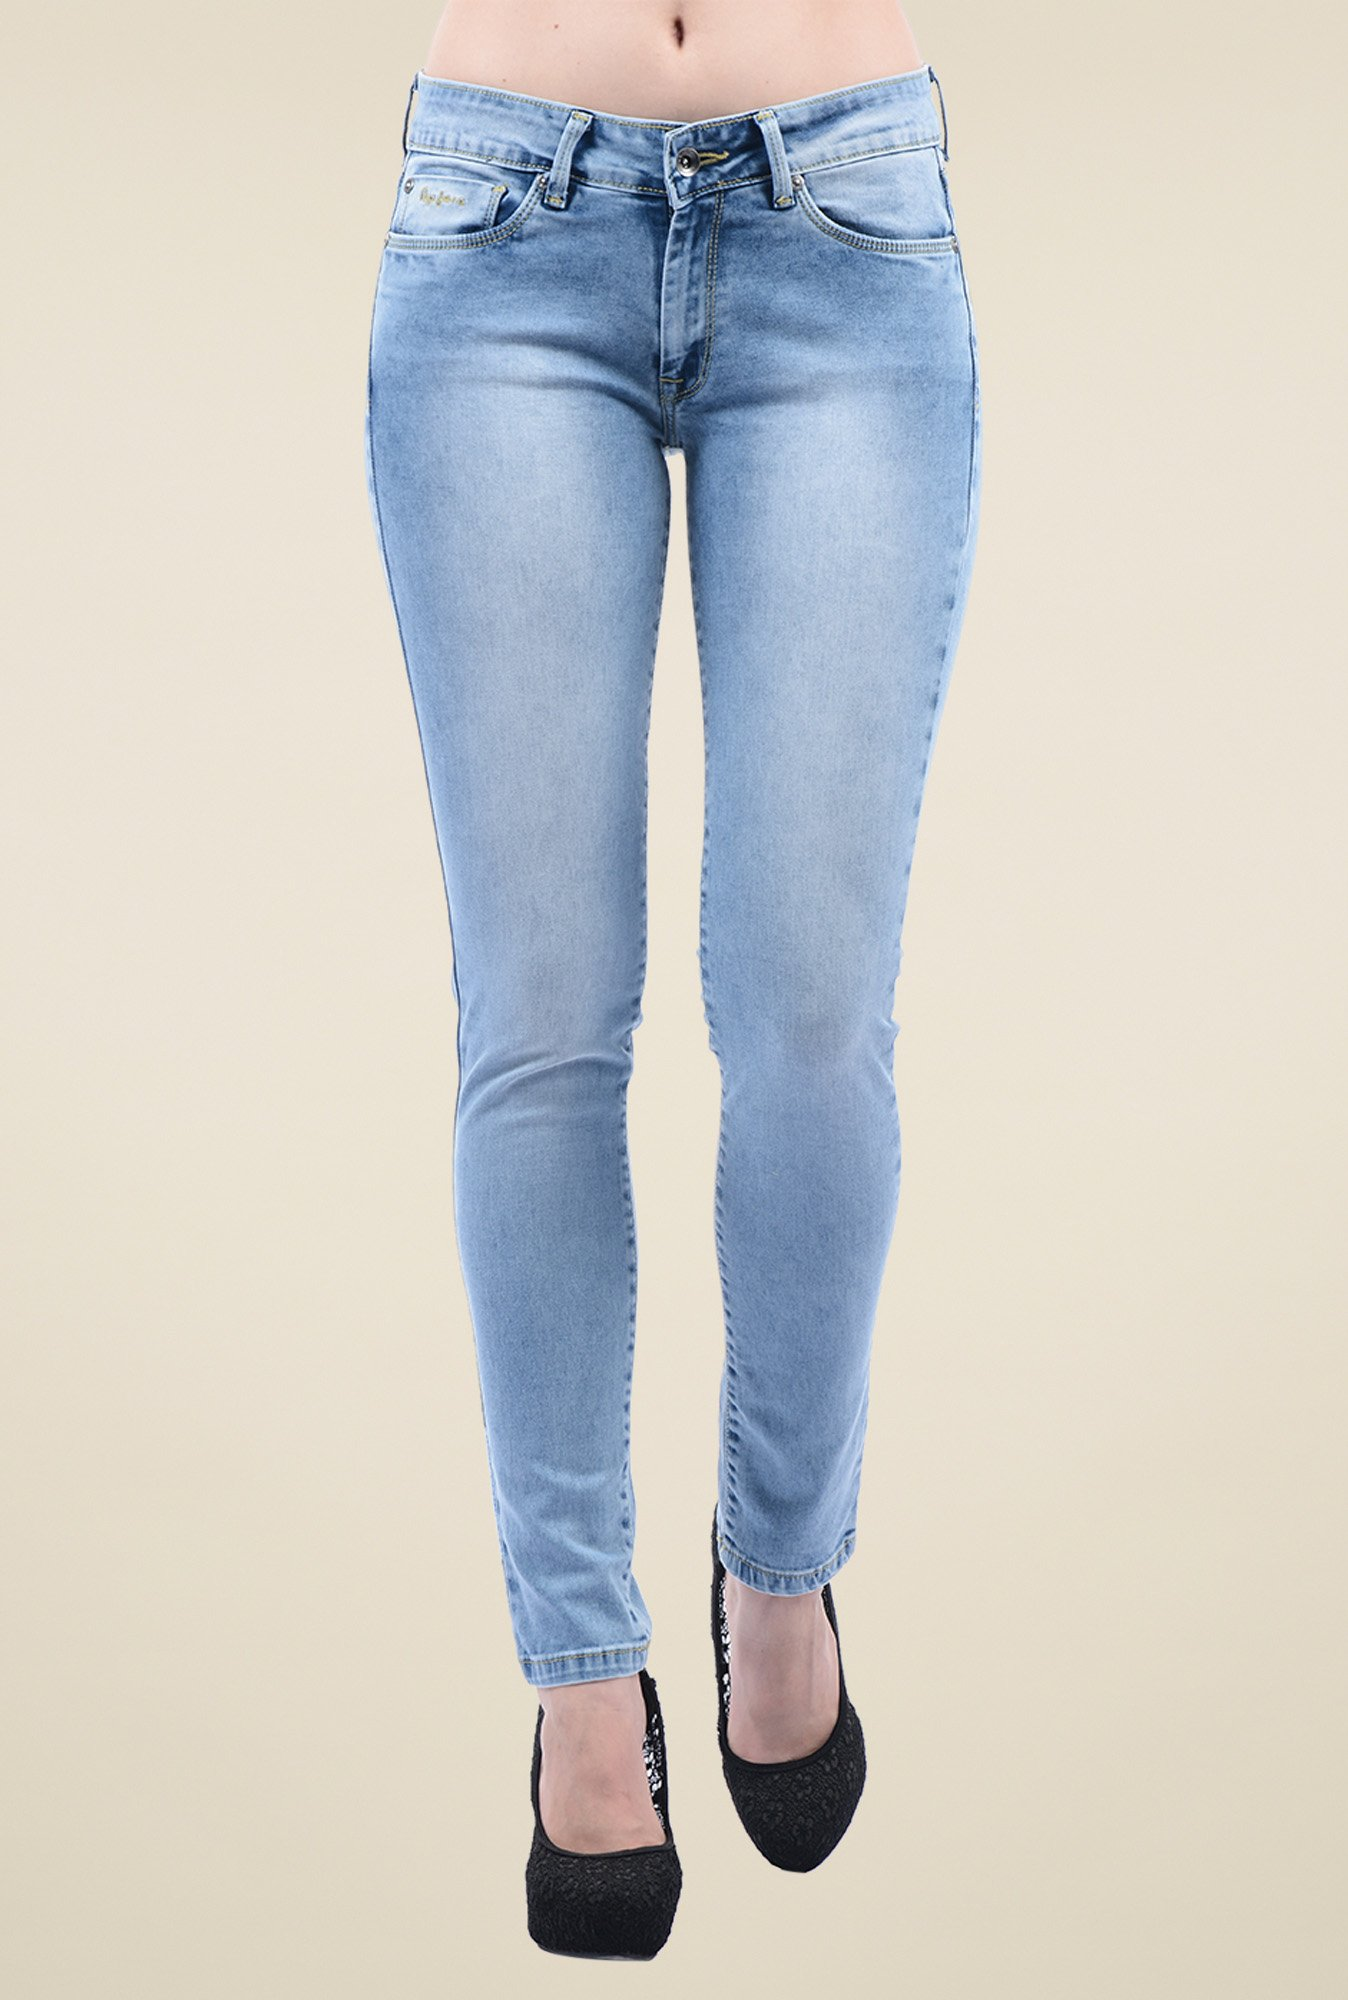 Pepe Jeans Blue Heavily Washed Slim Fit Jeans